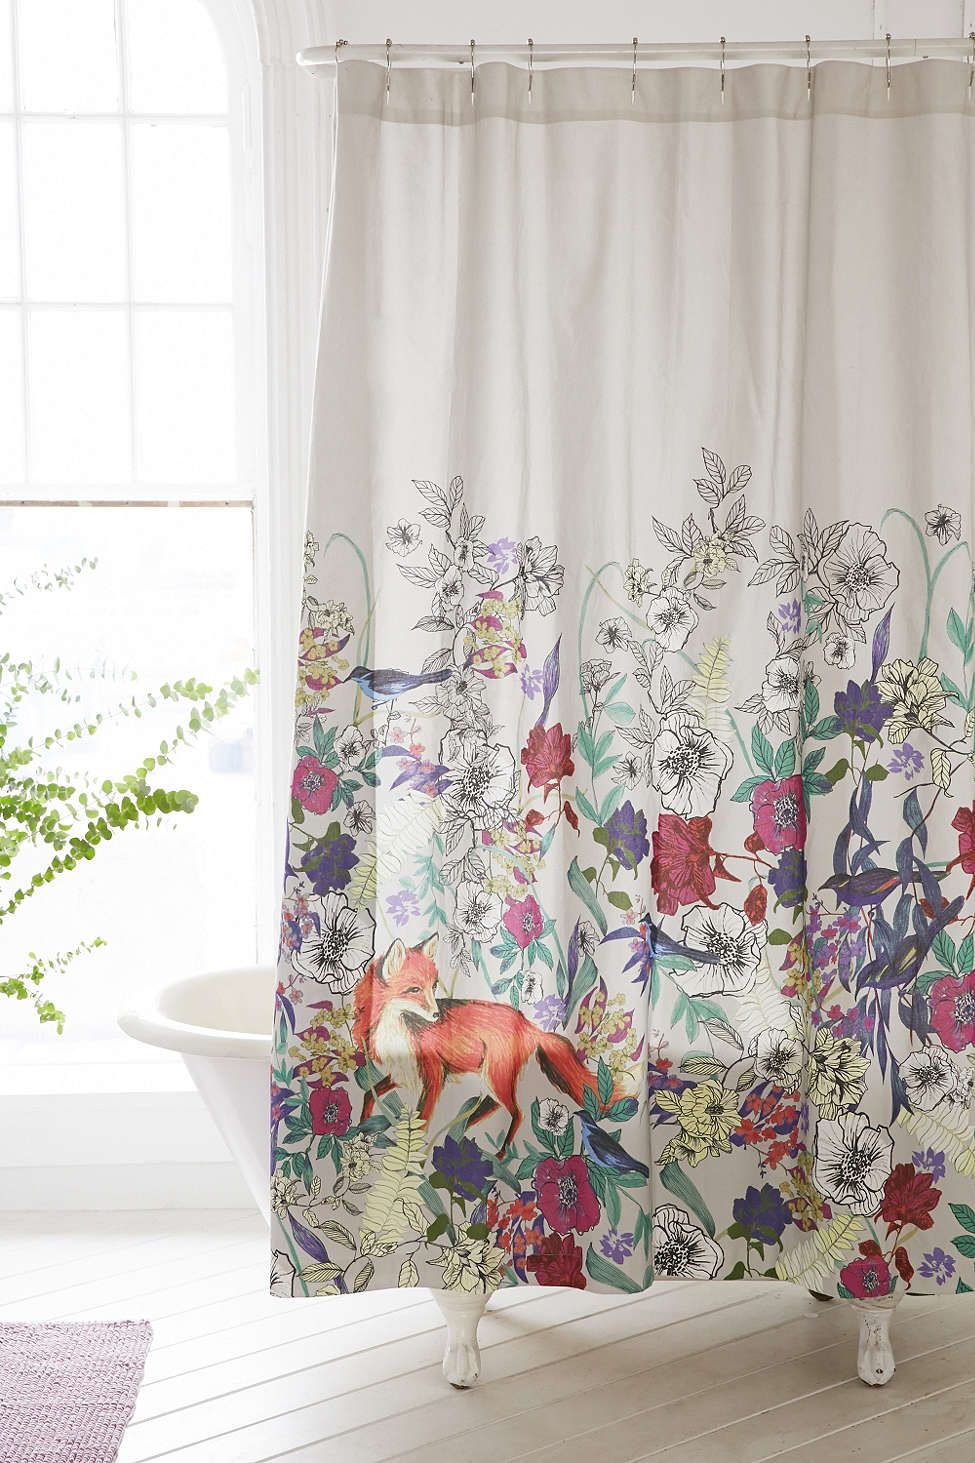 Exceptional Forest Critters Shower Curtain | Pretty Shower Curtains And More Home Decor  Ideas From @cydconverse